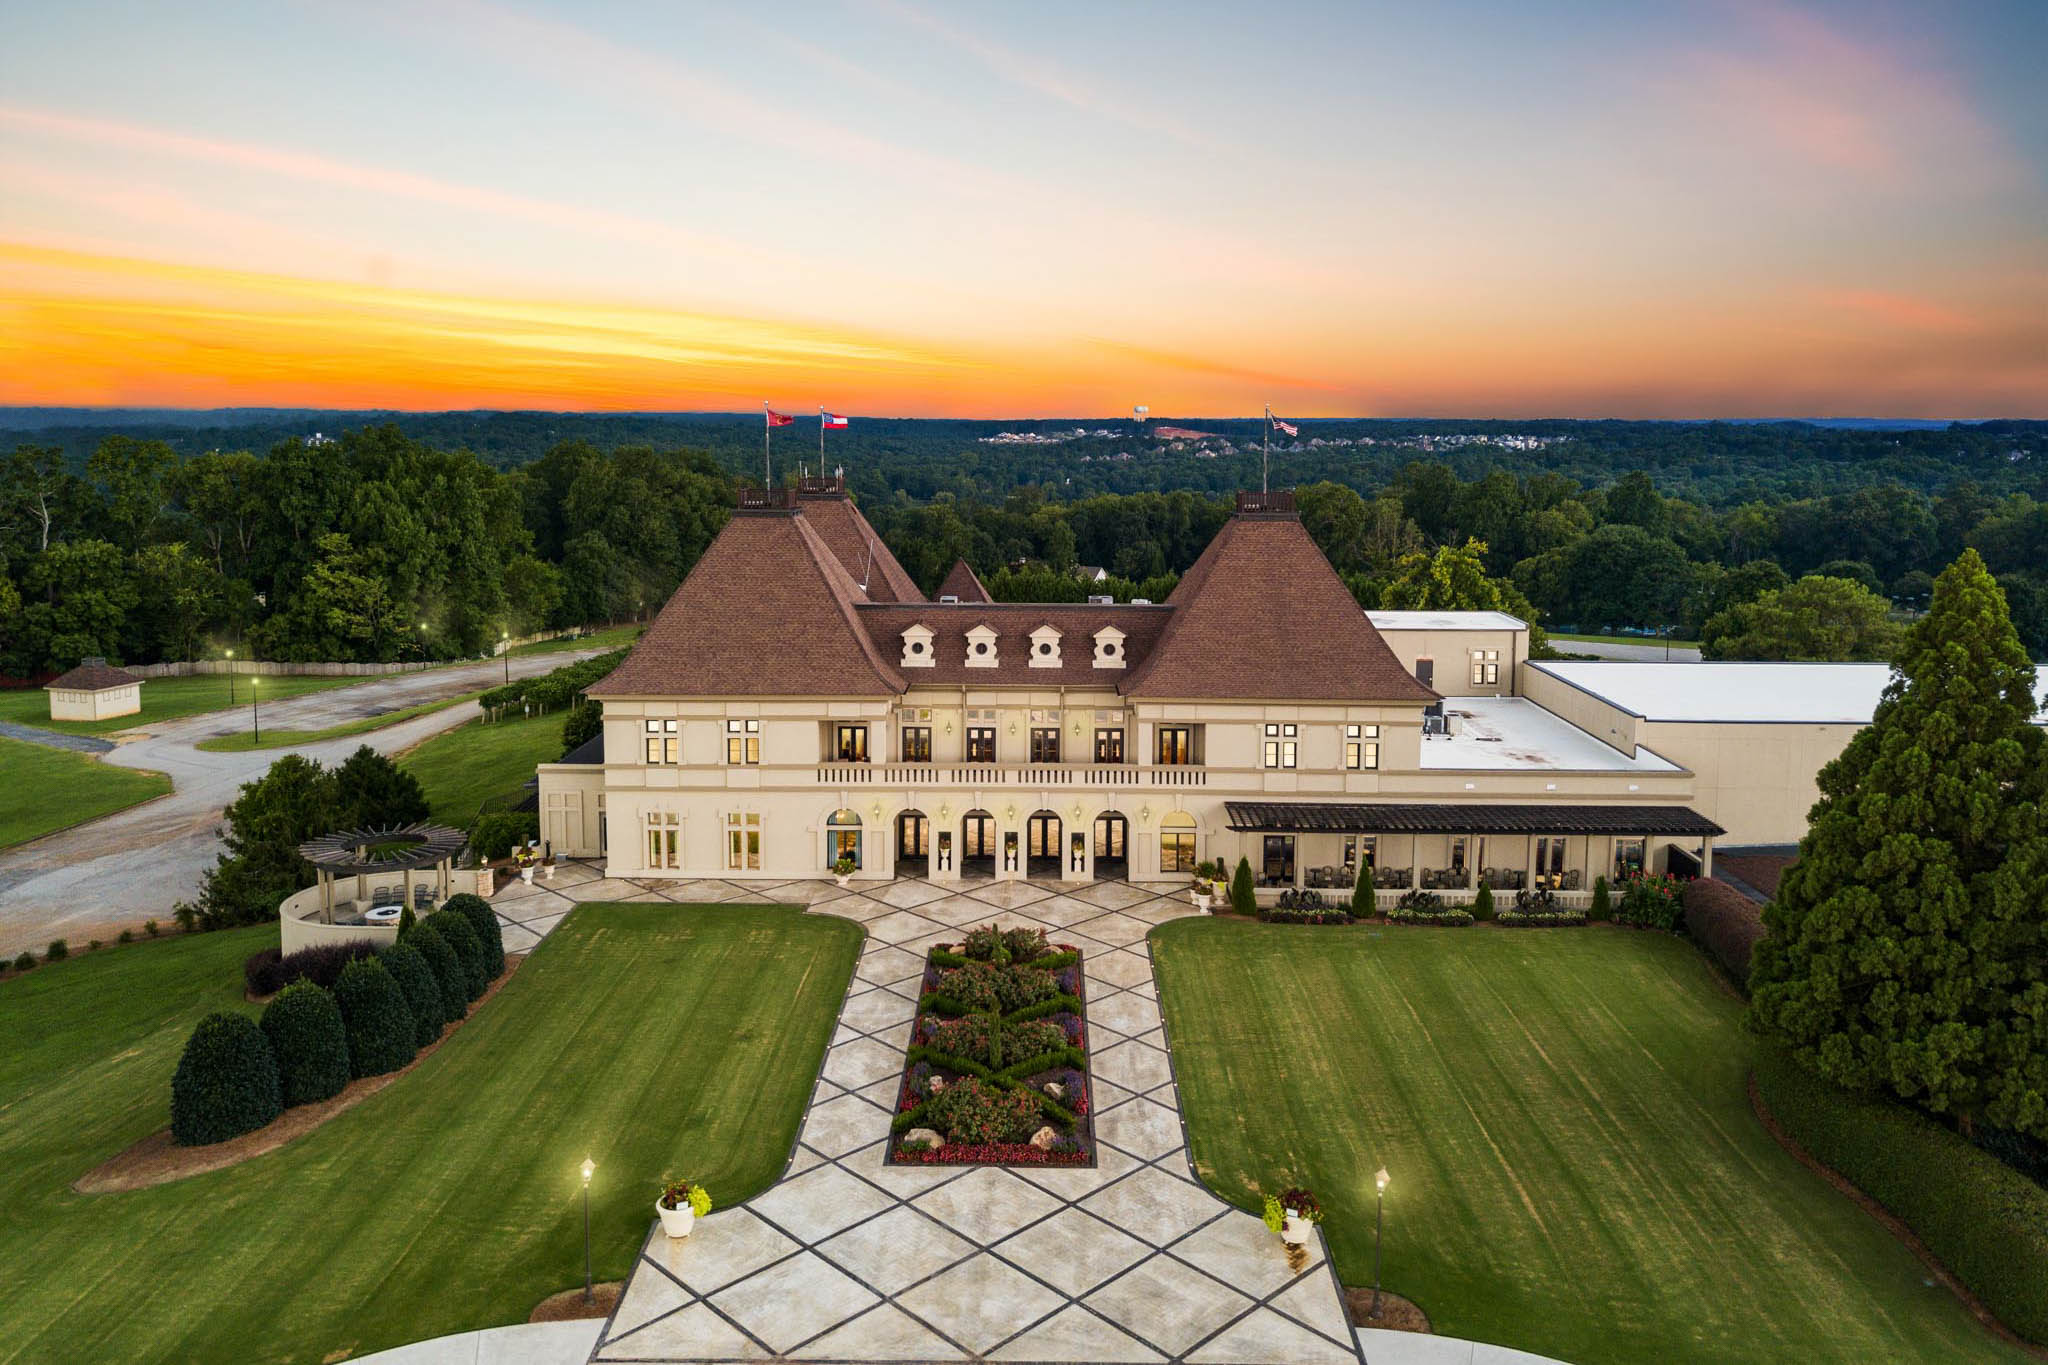 real_estate_photographer_aerial_photography-1.jpg